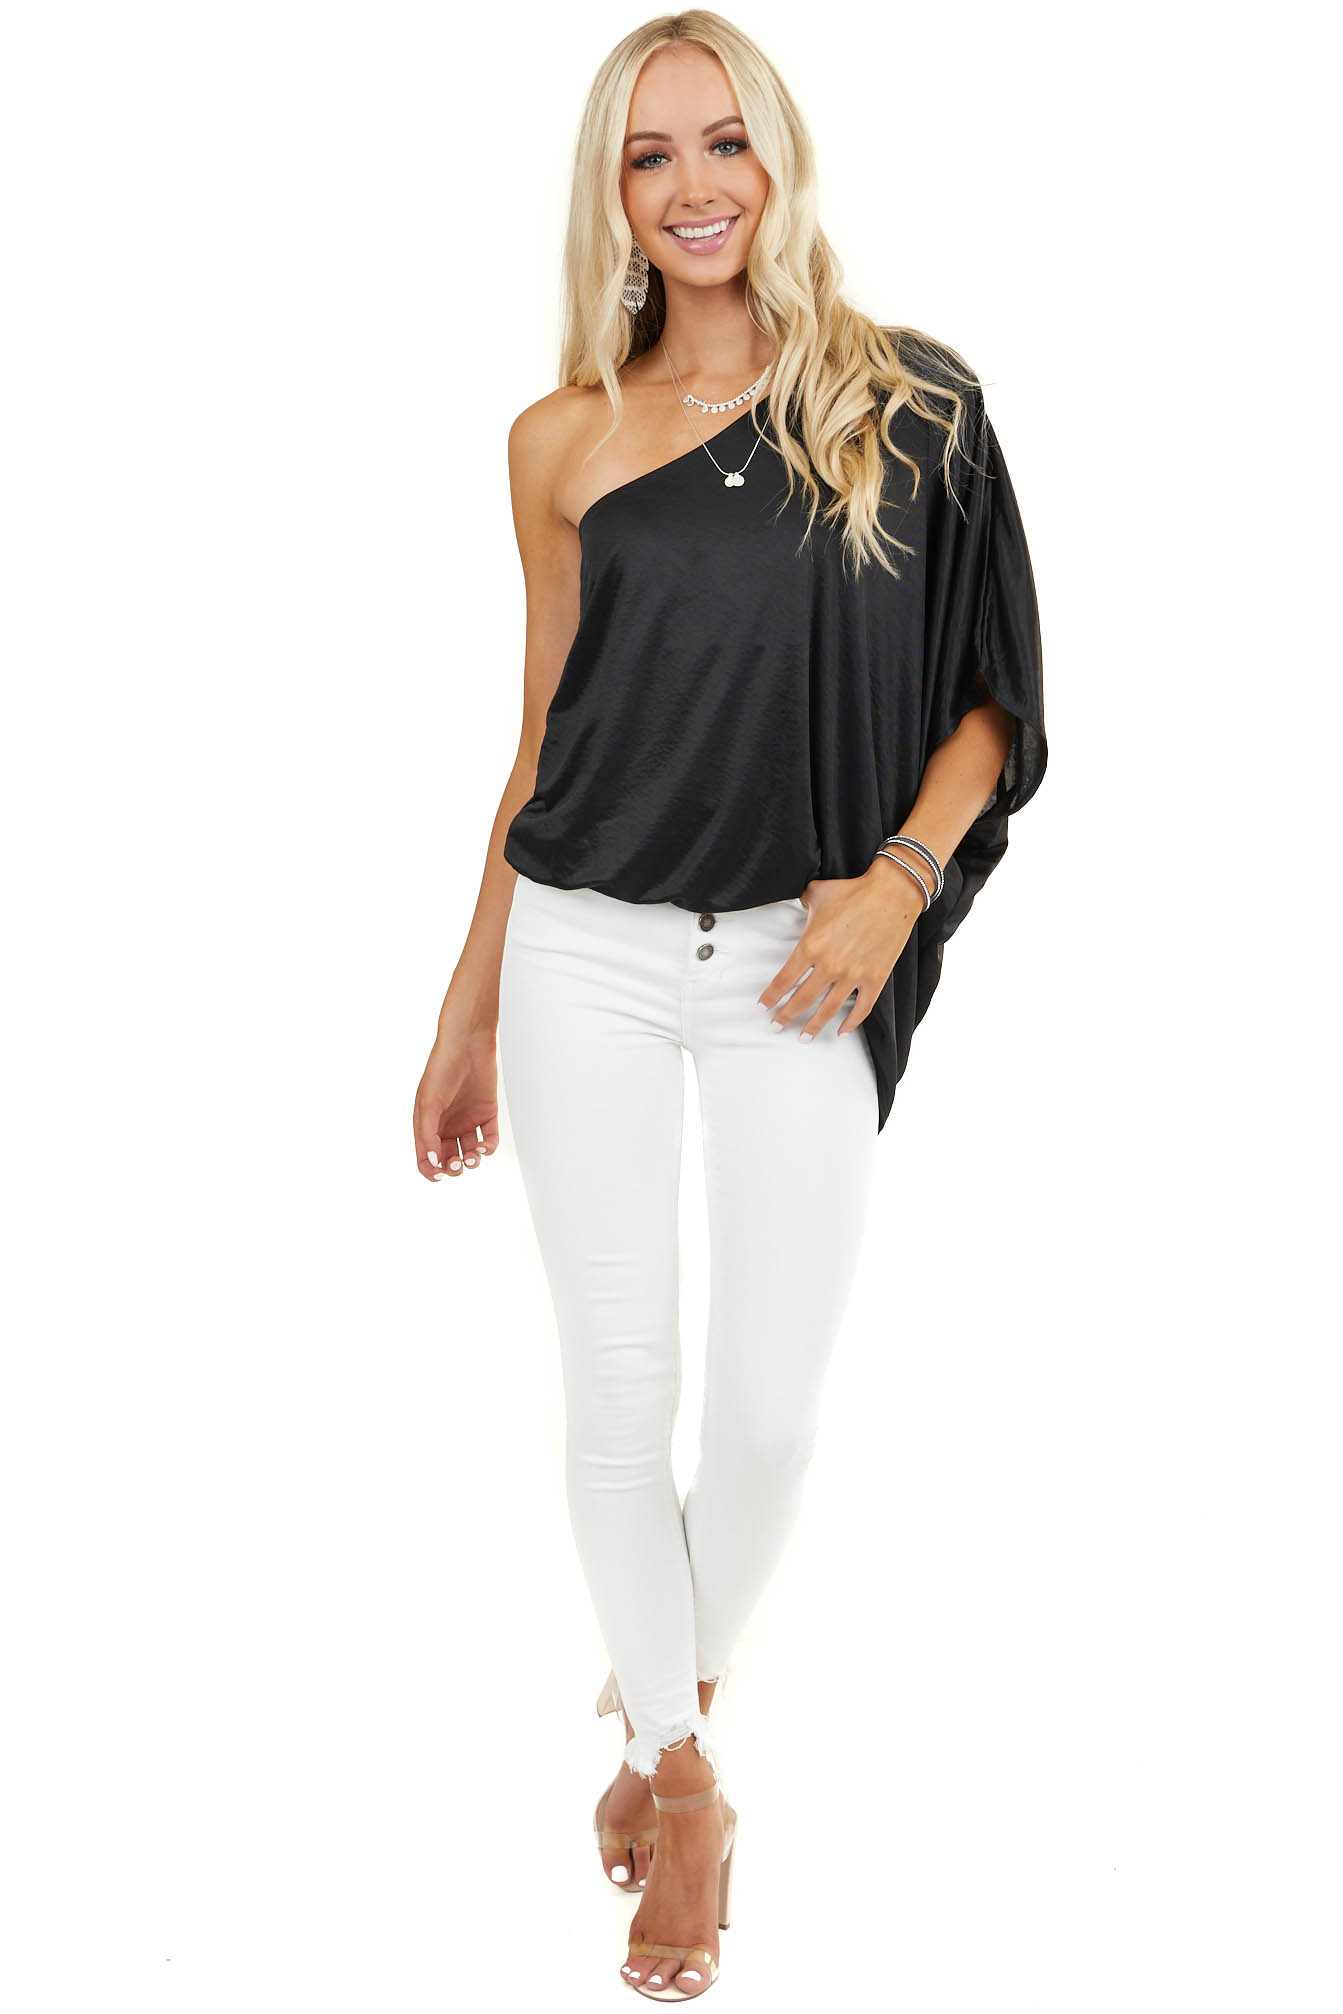 Black One Shoulder Silky Woven Top with Elastic Hemline